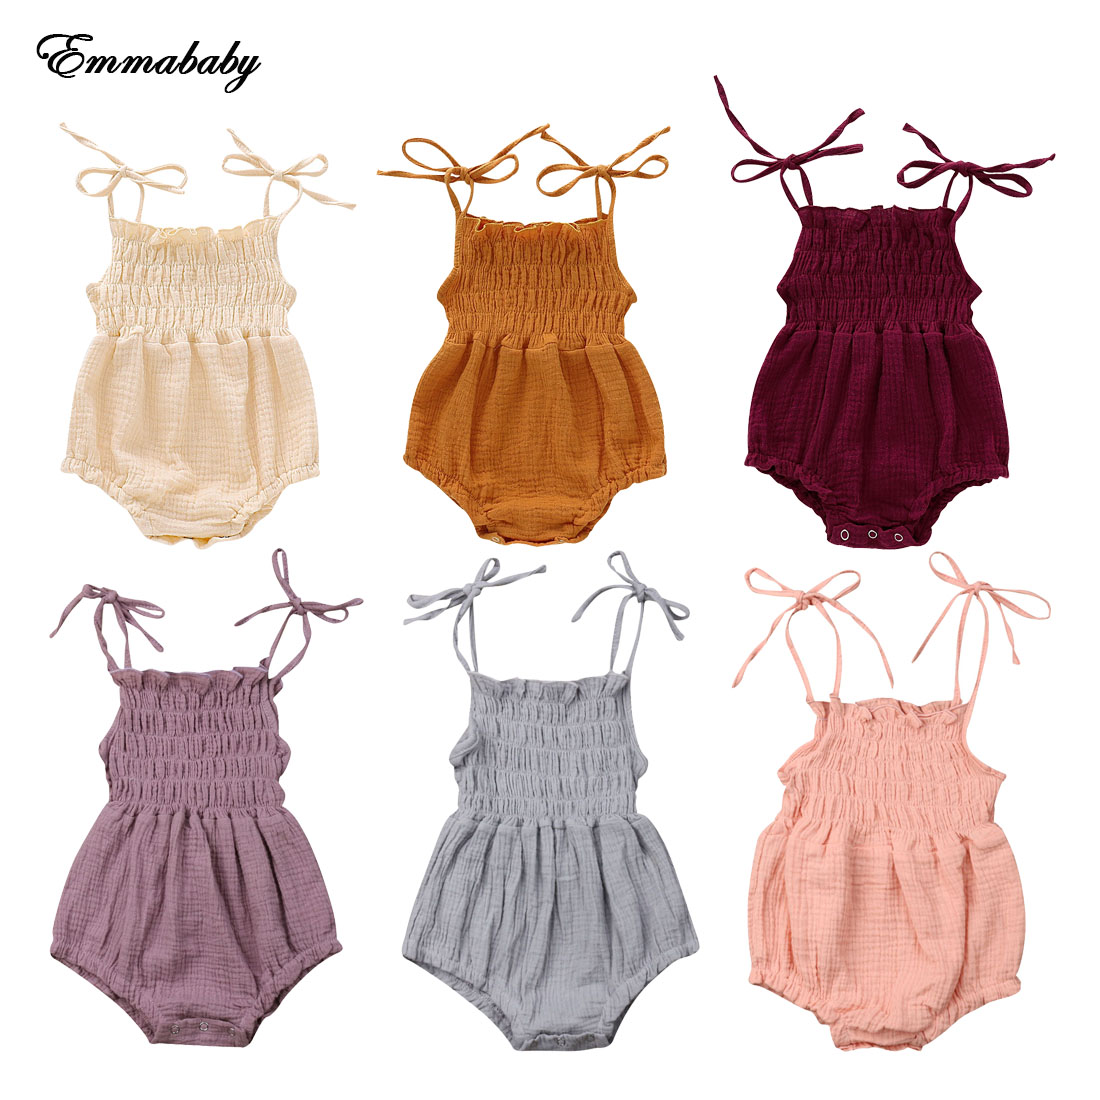 NEW 2020 Summer Newborn Infant Baby Girl Solid Romper Bodysuit Jumpsuit Outfit Clothes 0-18M